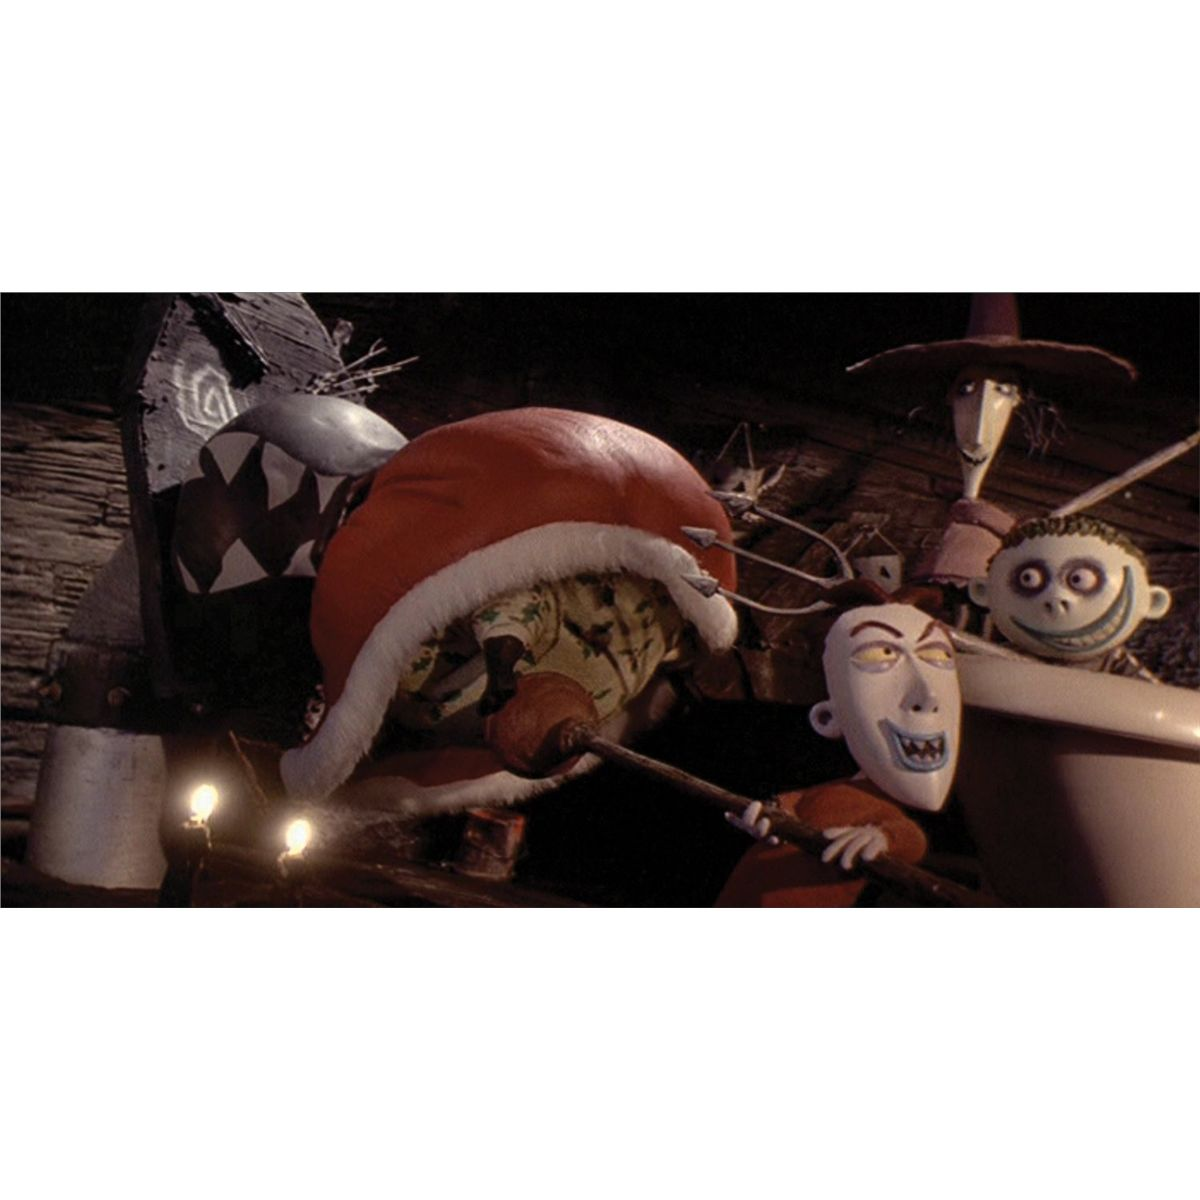 locks plunger from the nightmare before christmas - Lock The Nightmare Before Christmas